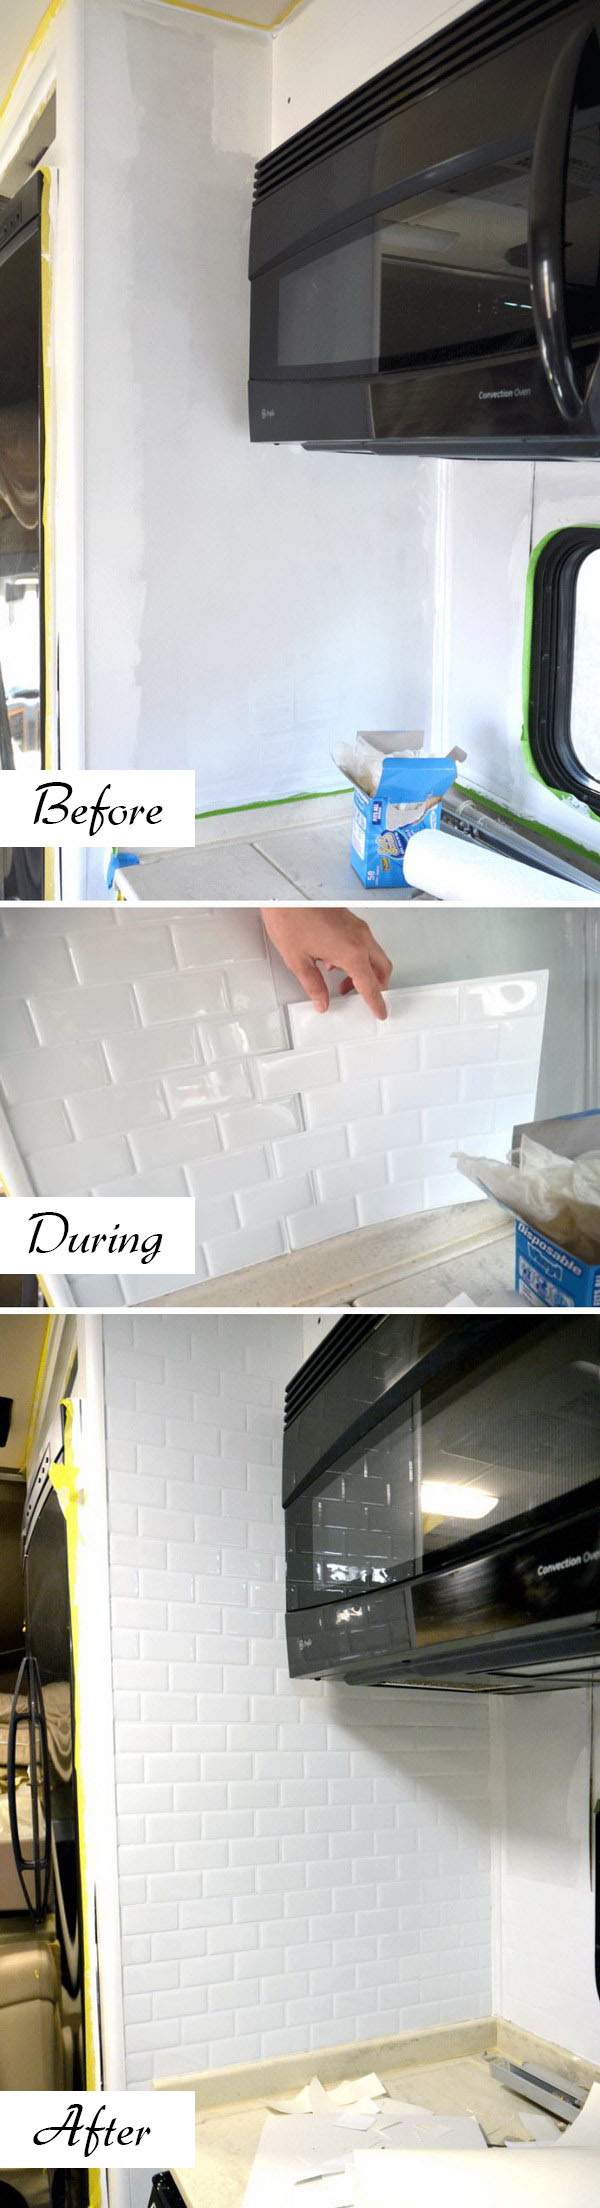 Opt for Peel and Stick Tiles to Cut the Cost of the Labor Involved.